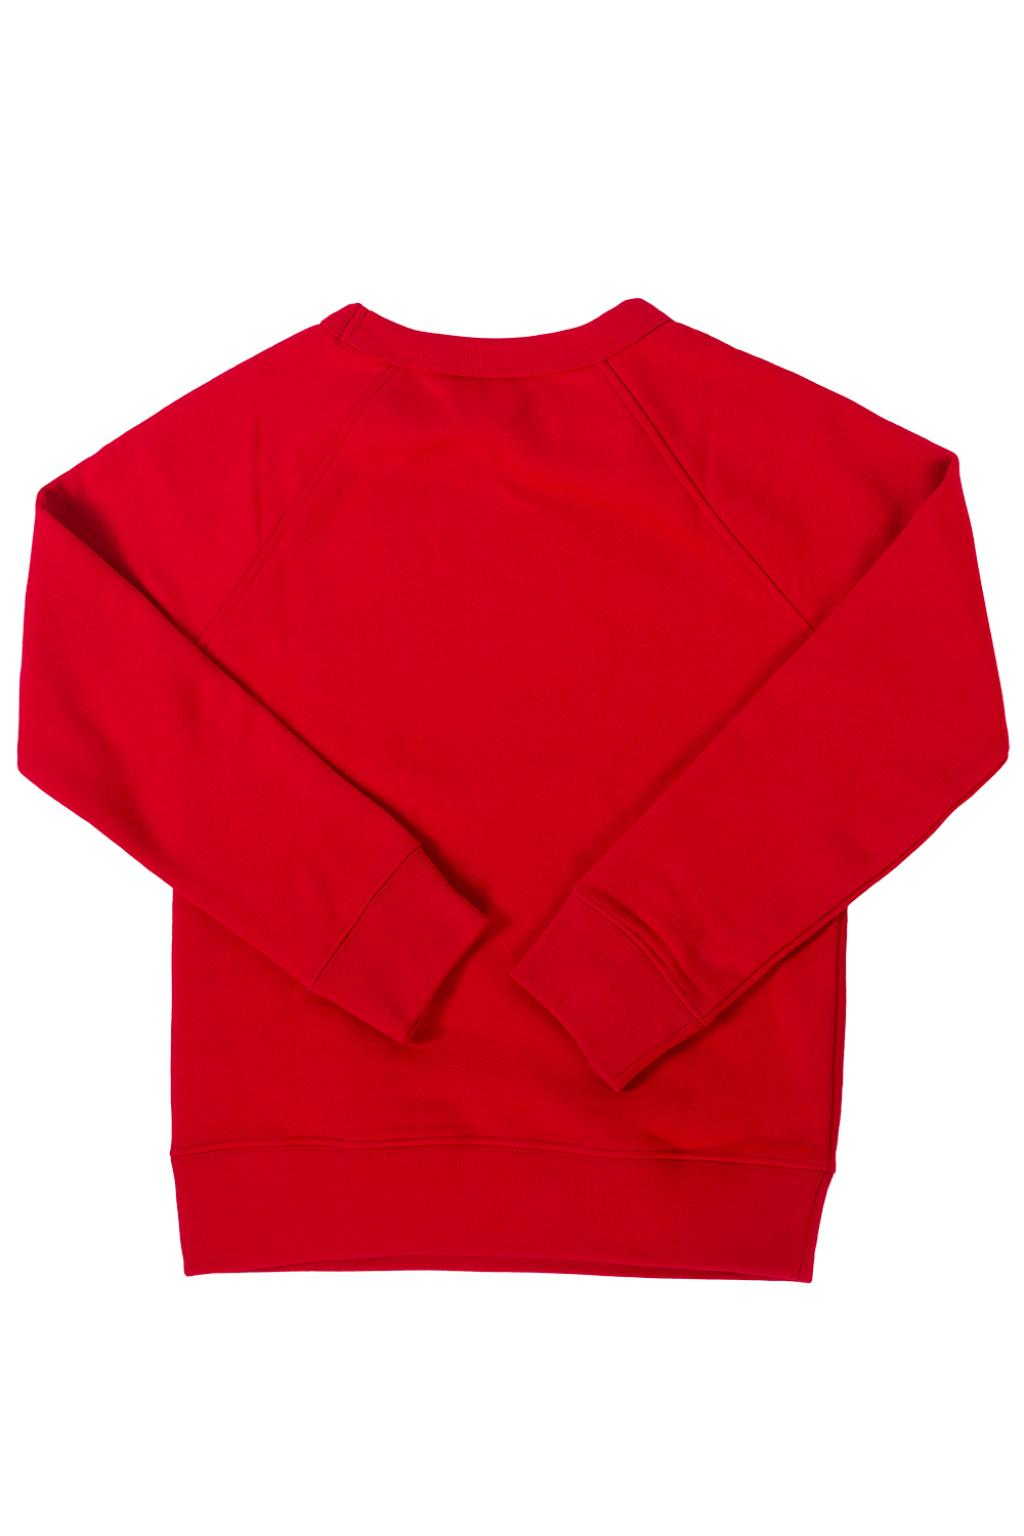 Gucci Kids Logo-printed sweatshirt